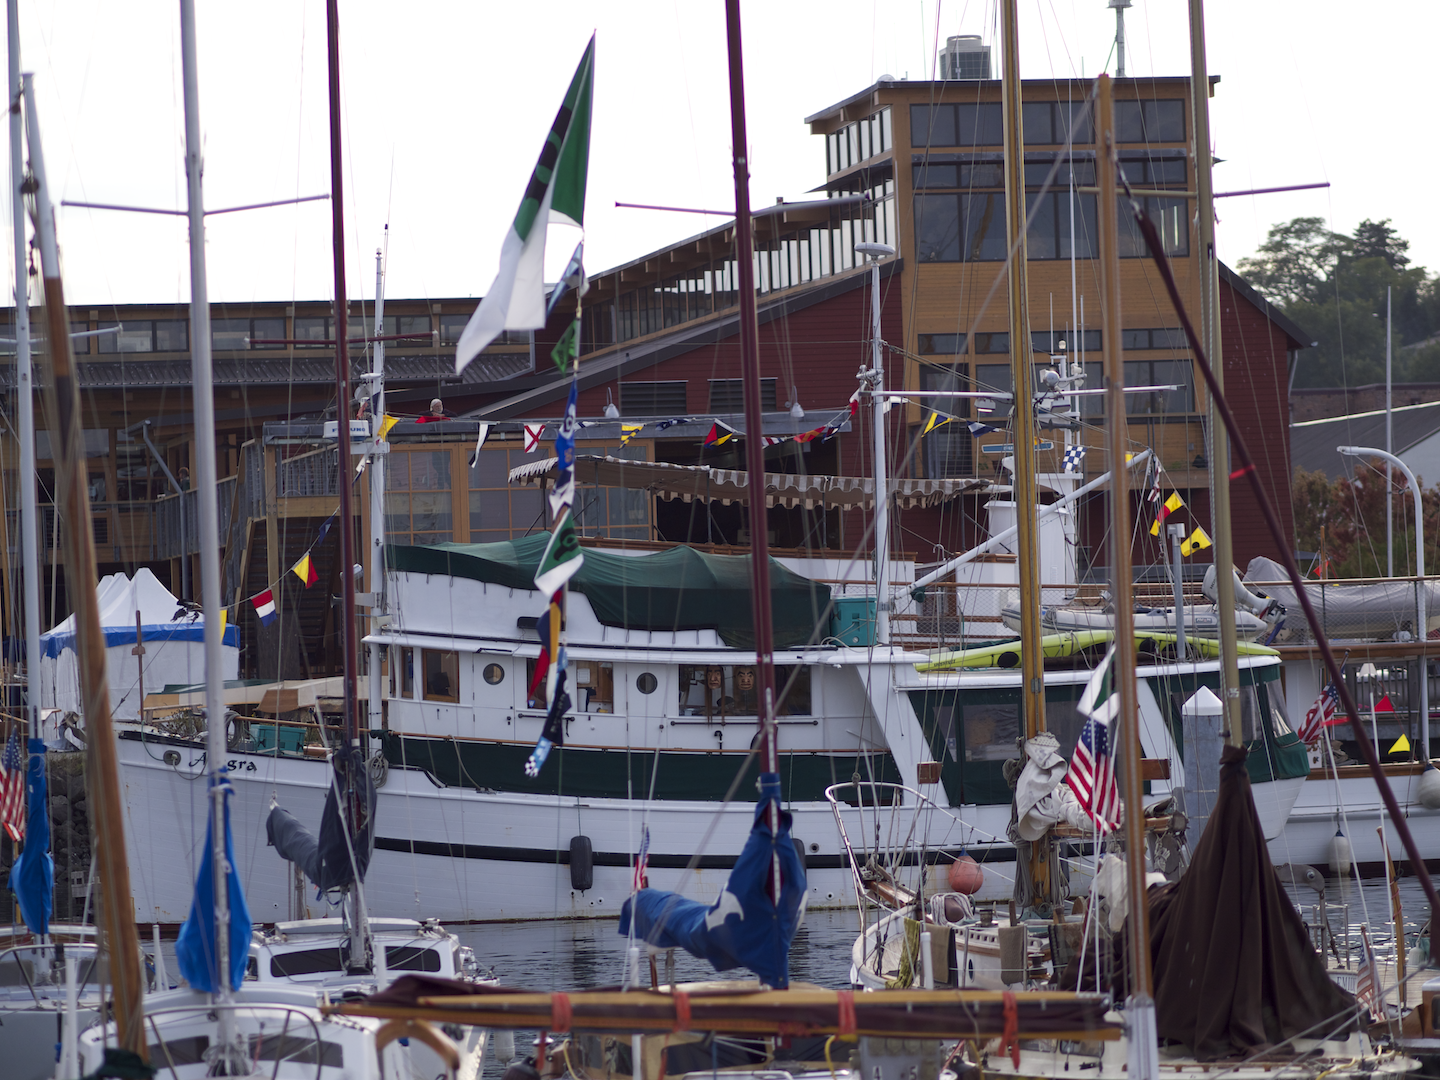 Wooden Boat Festival at the NW Maritime Center